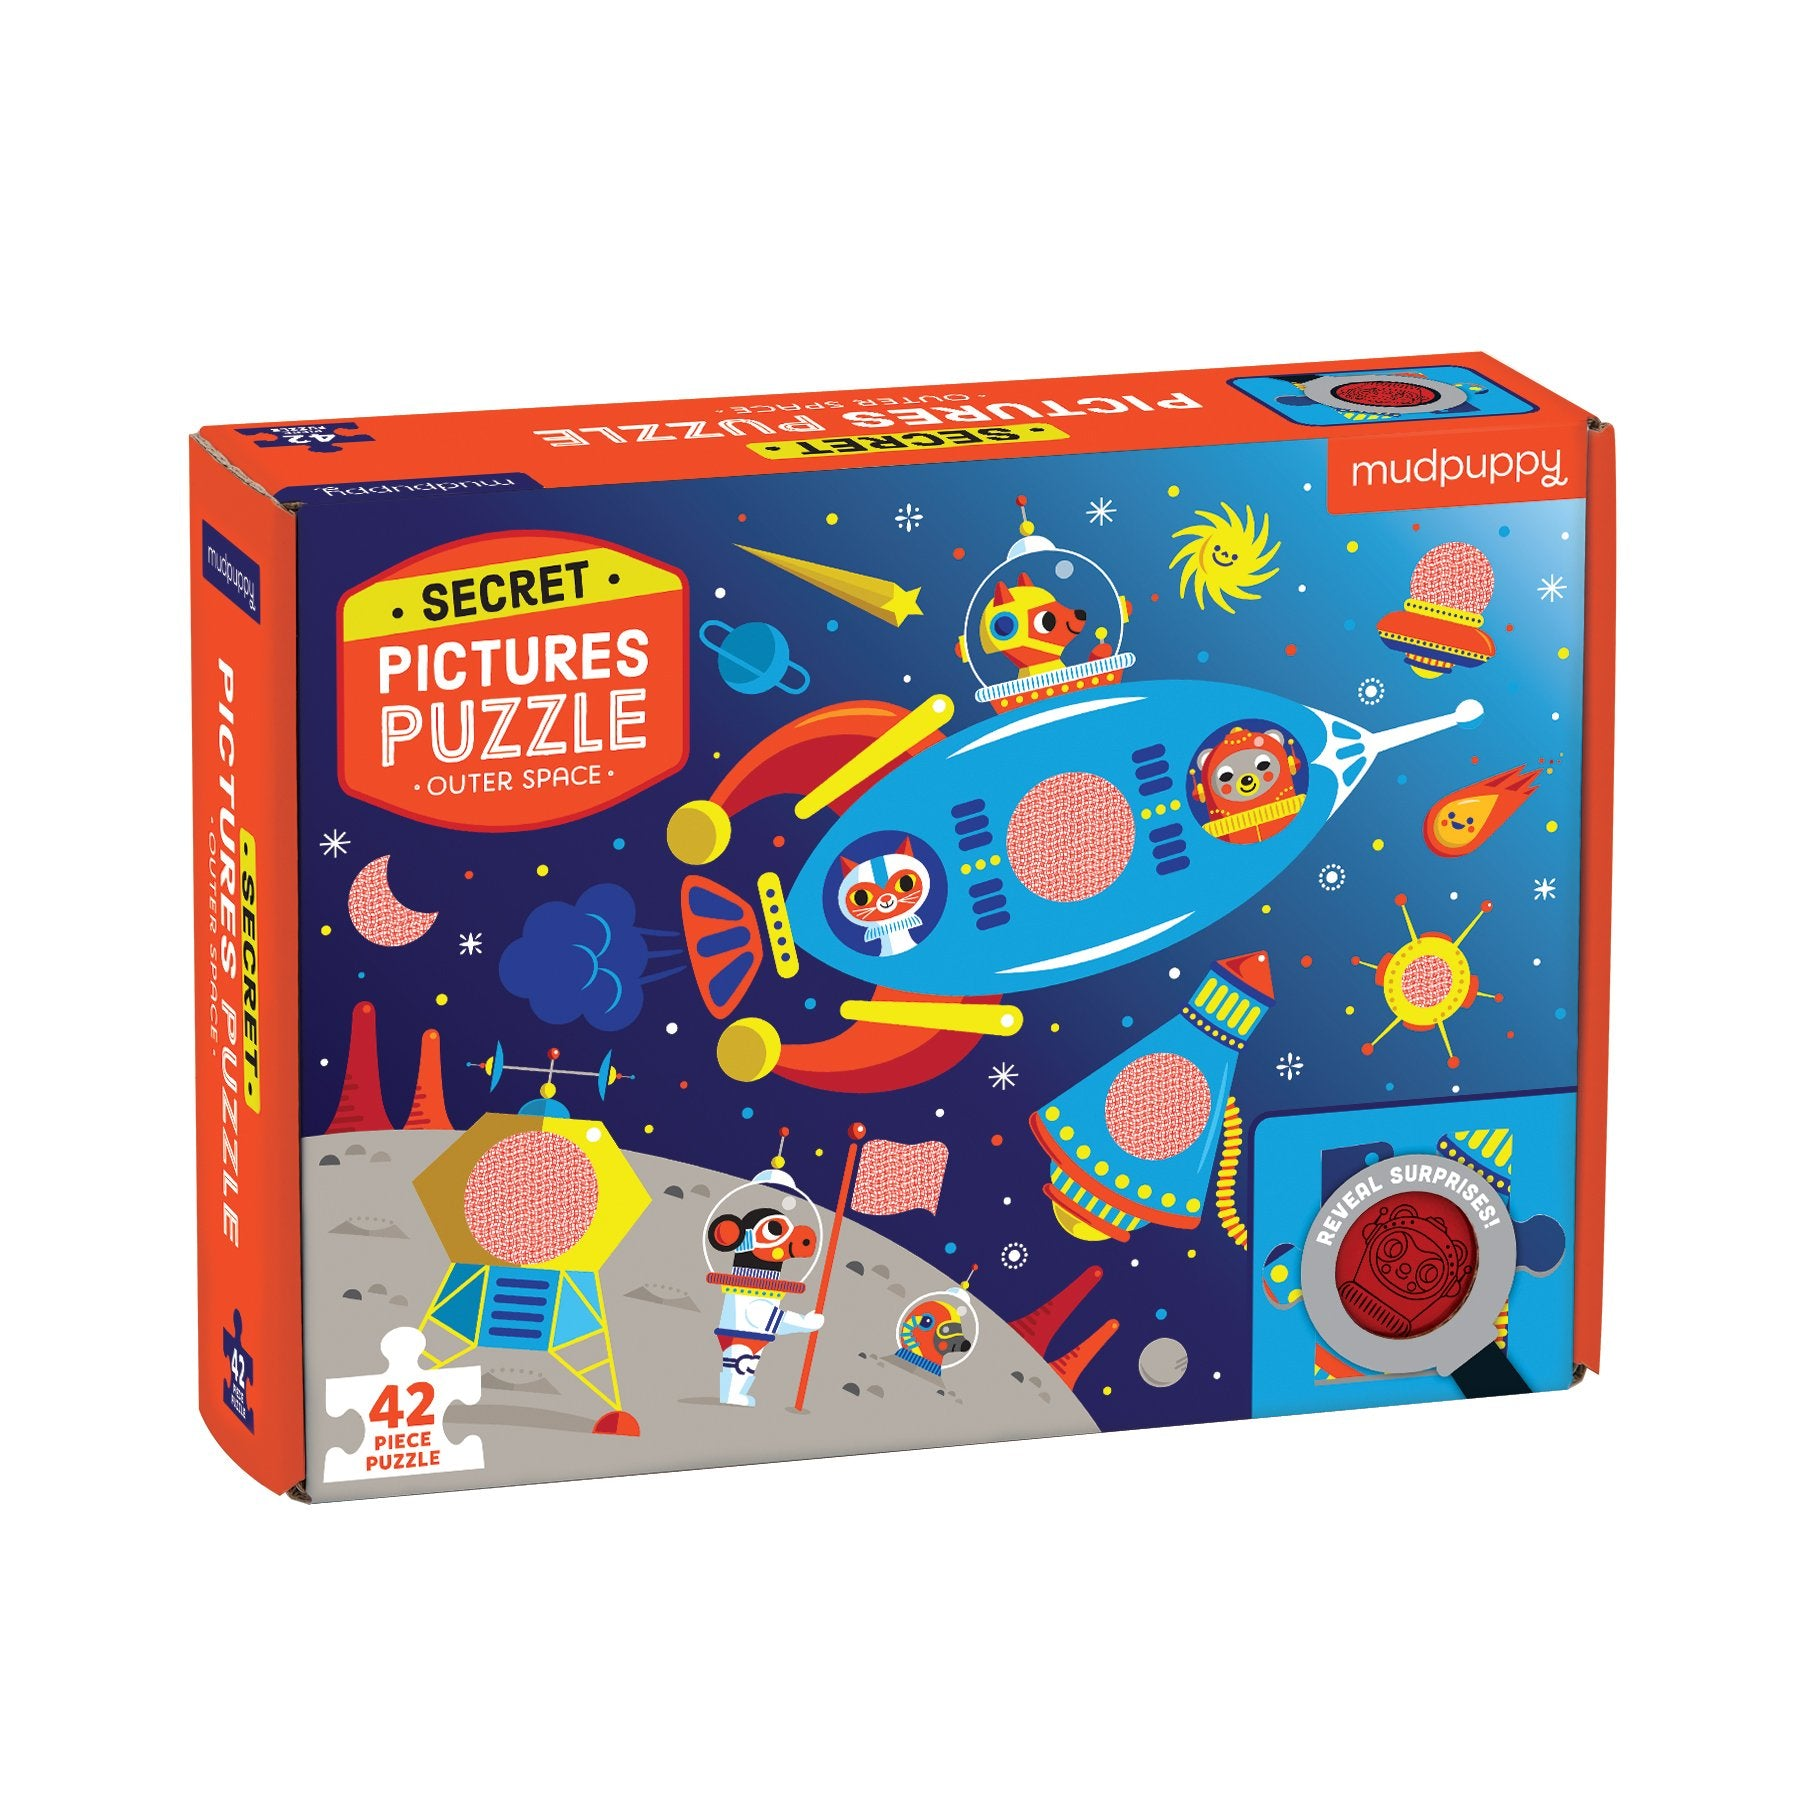 Mudpuppy Secret Pictures Puzzle Mudpuppy Puzzles Outer Space at Little Earth Nest Eco Shop